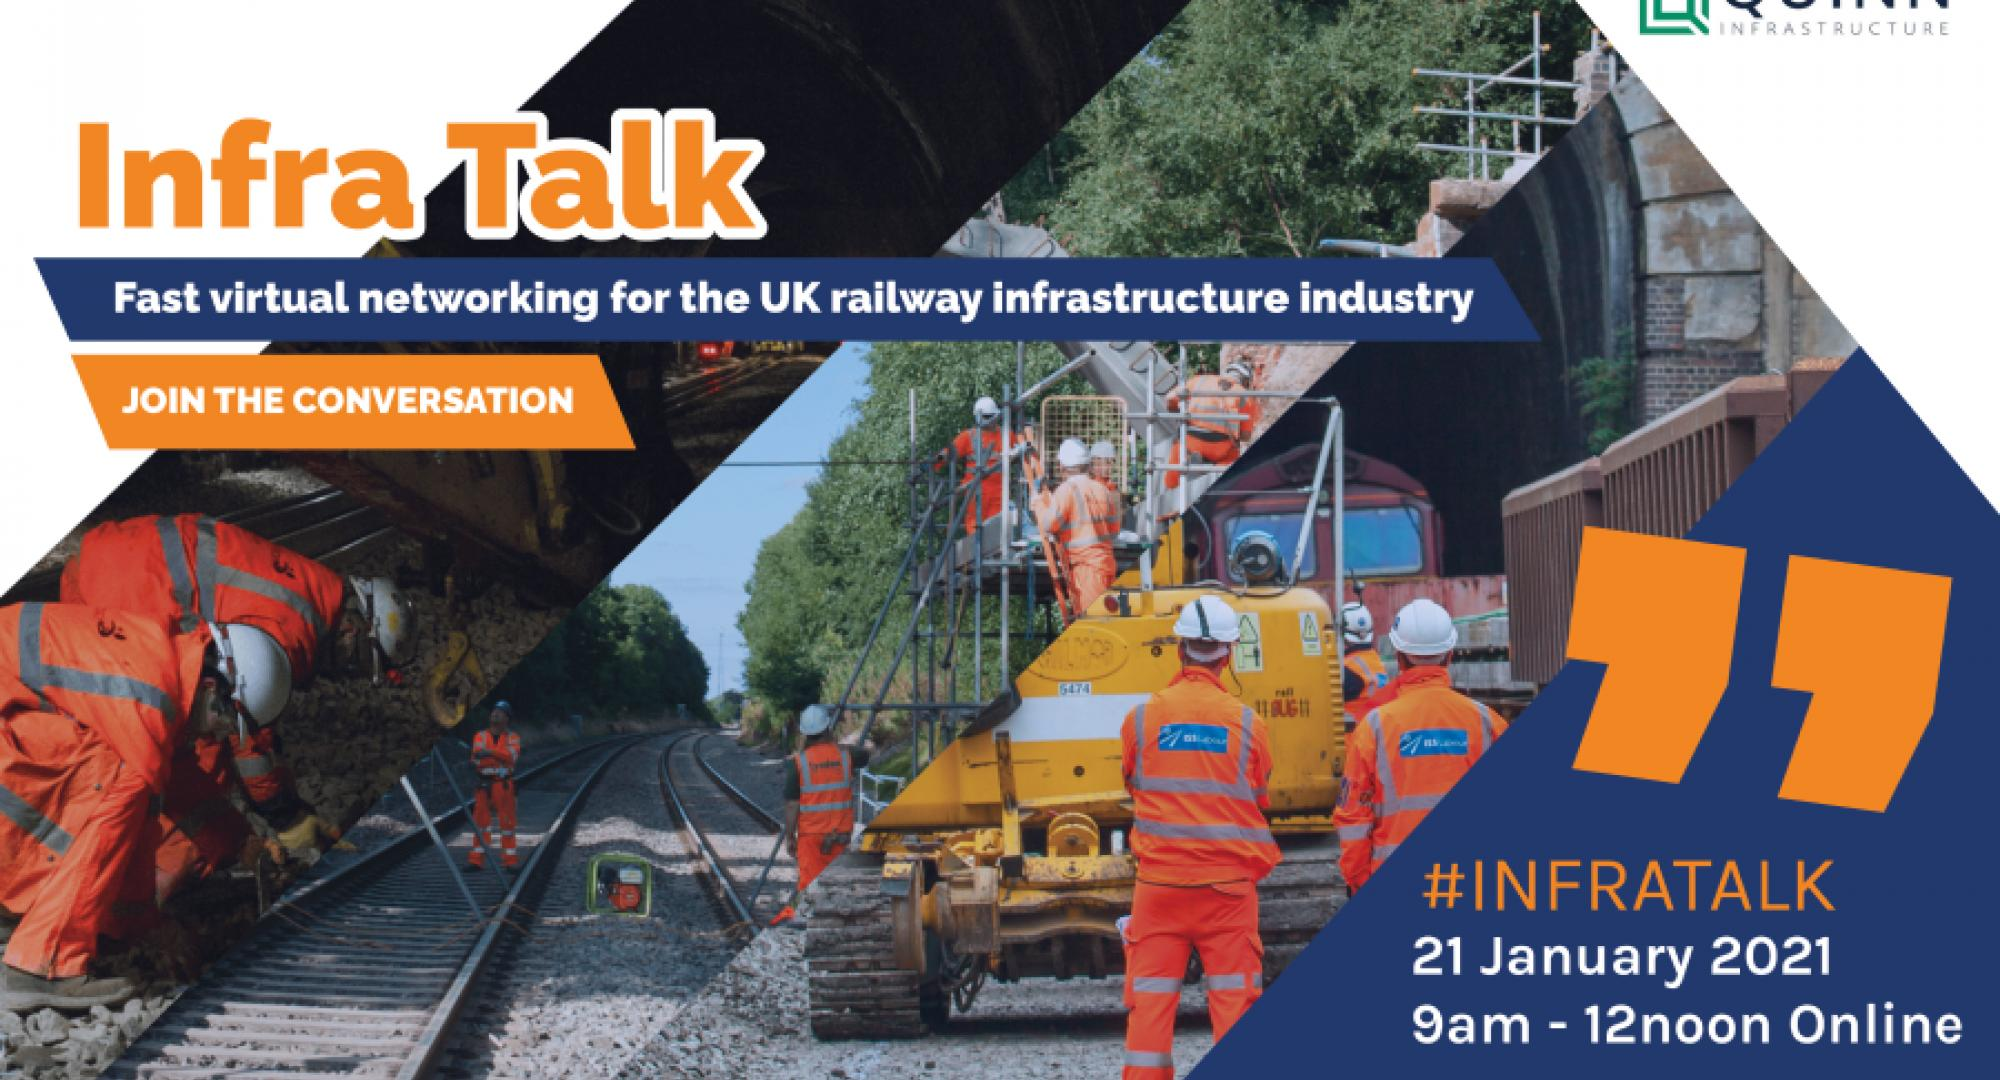 Rail Forum Midlands launch virtual Infra Talk event